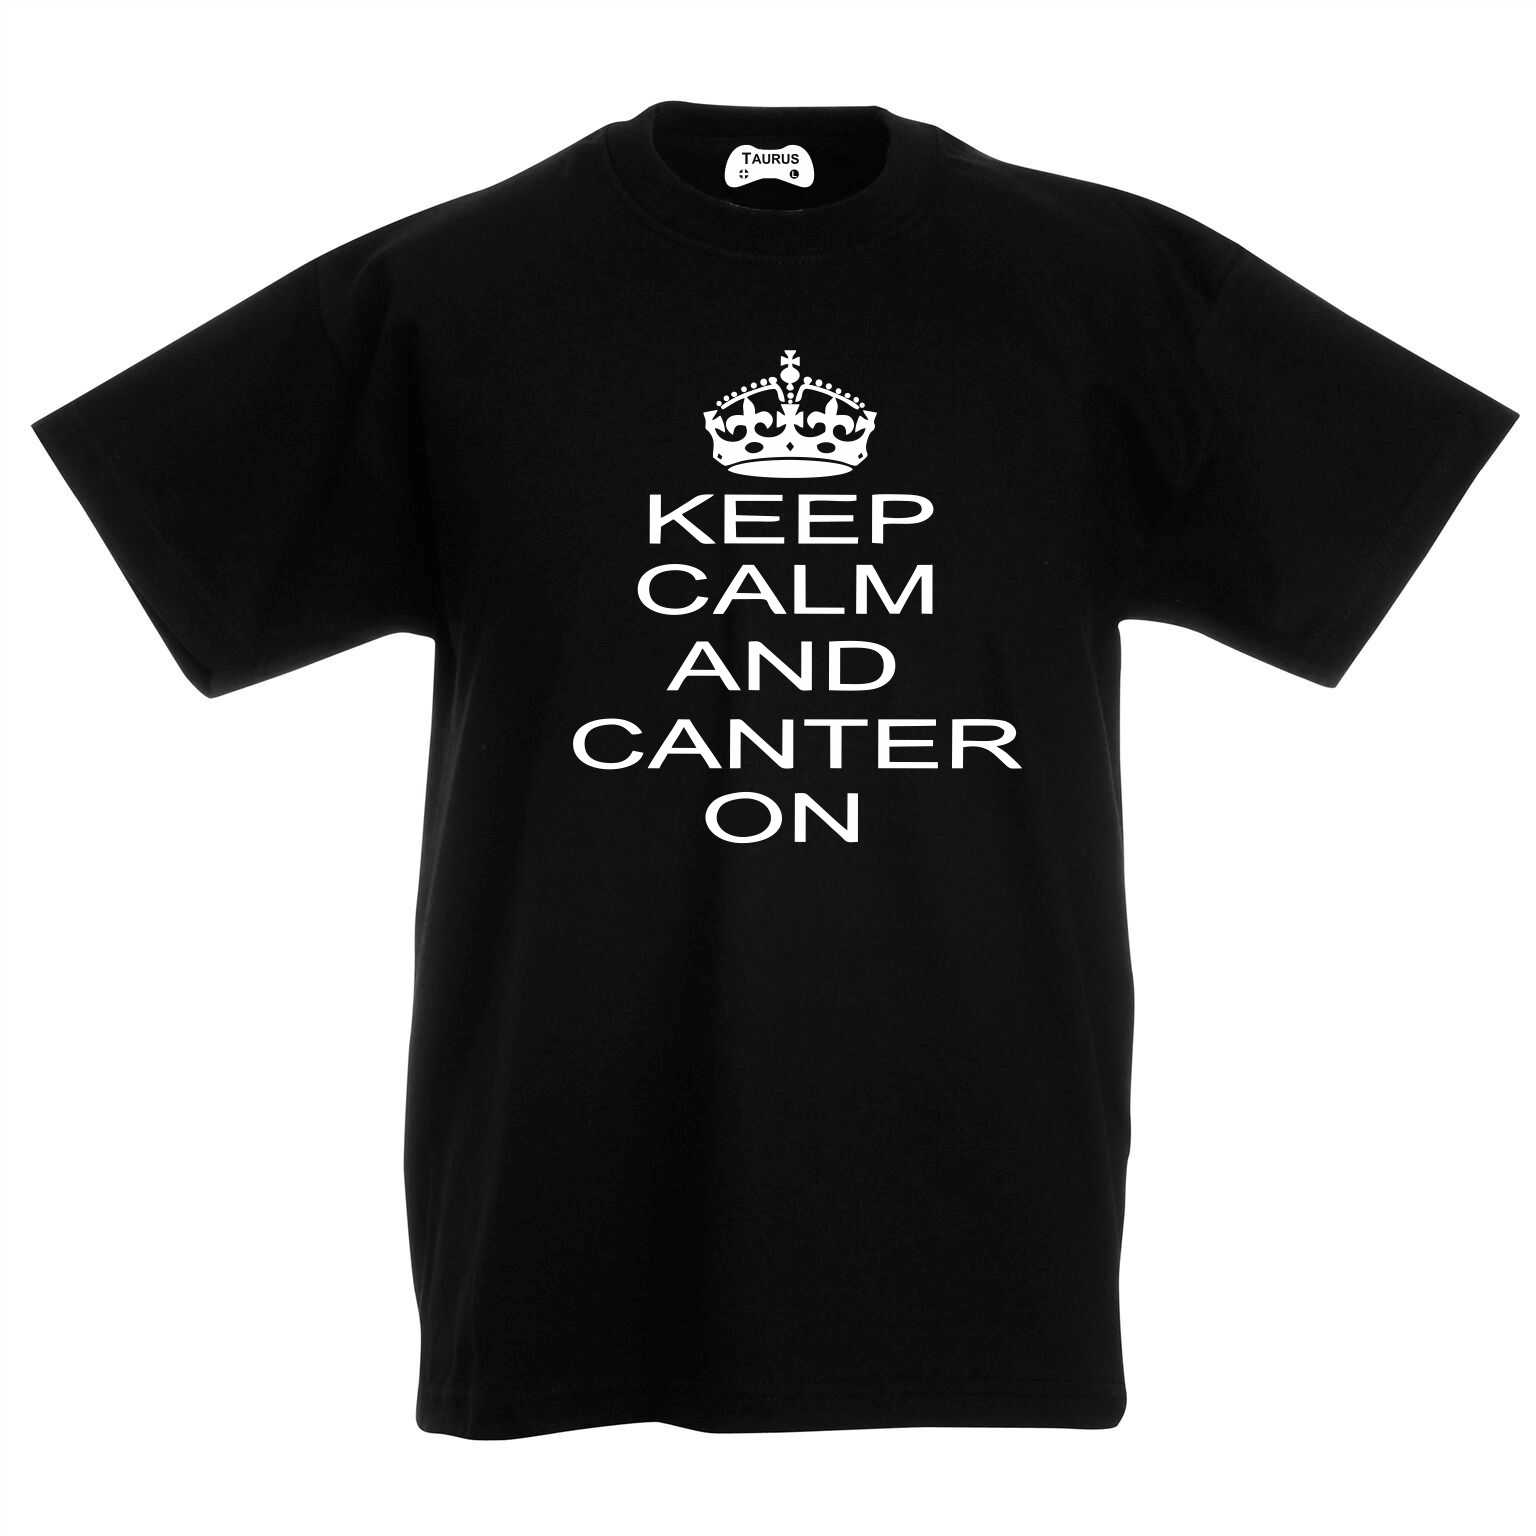 Canter On Kids T-Shirt